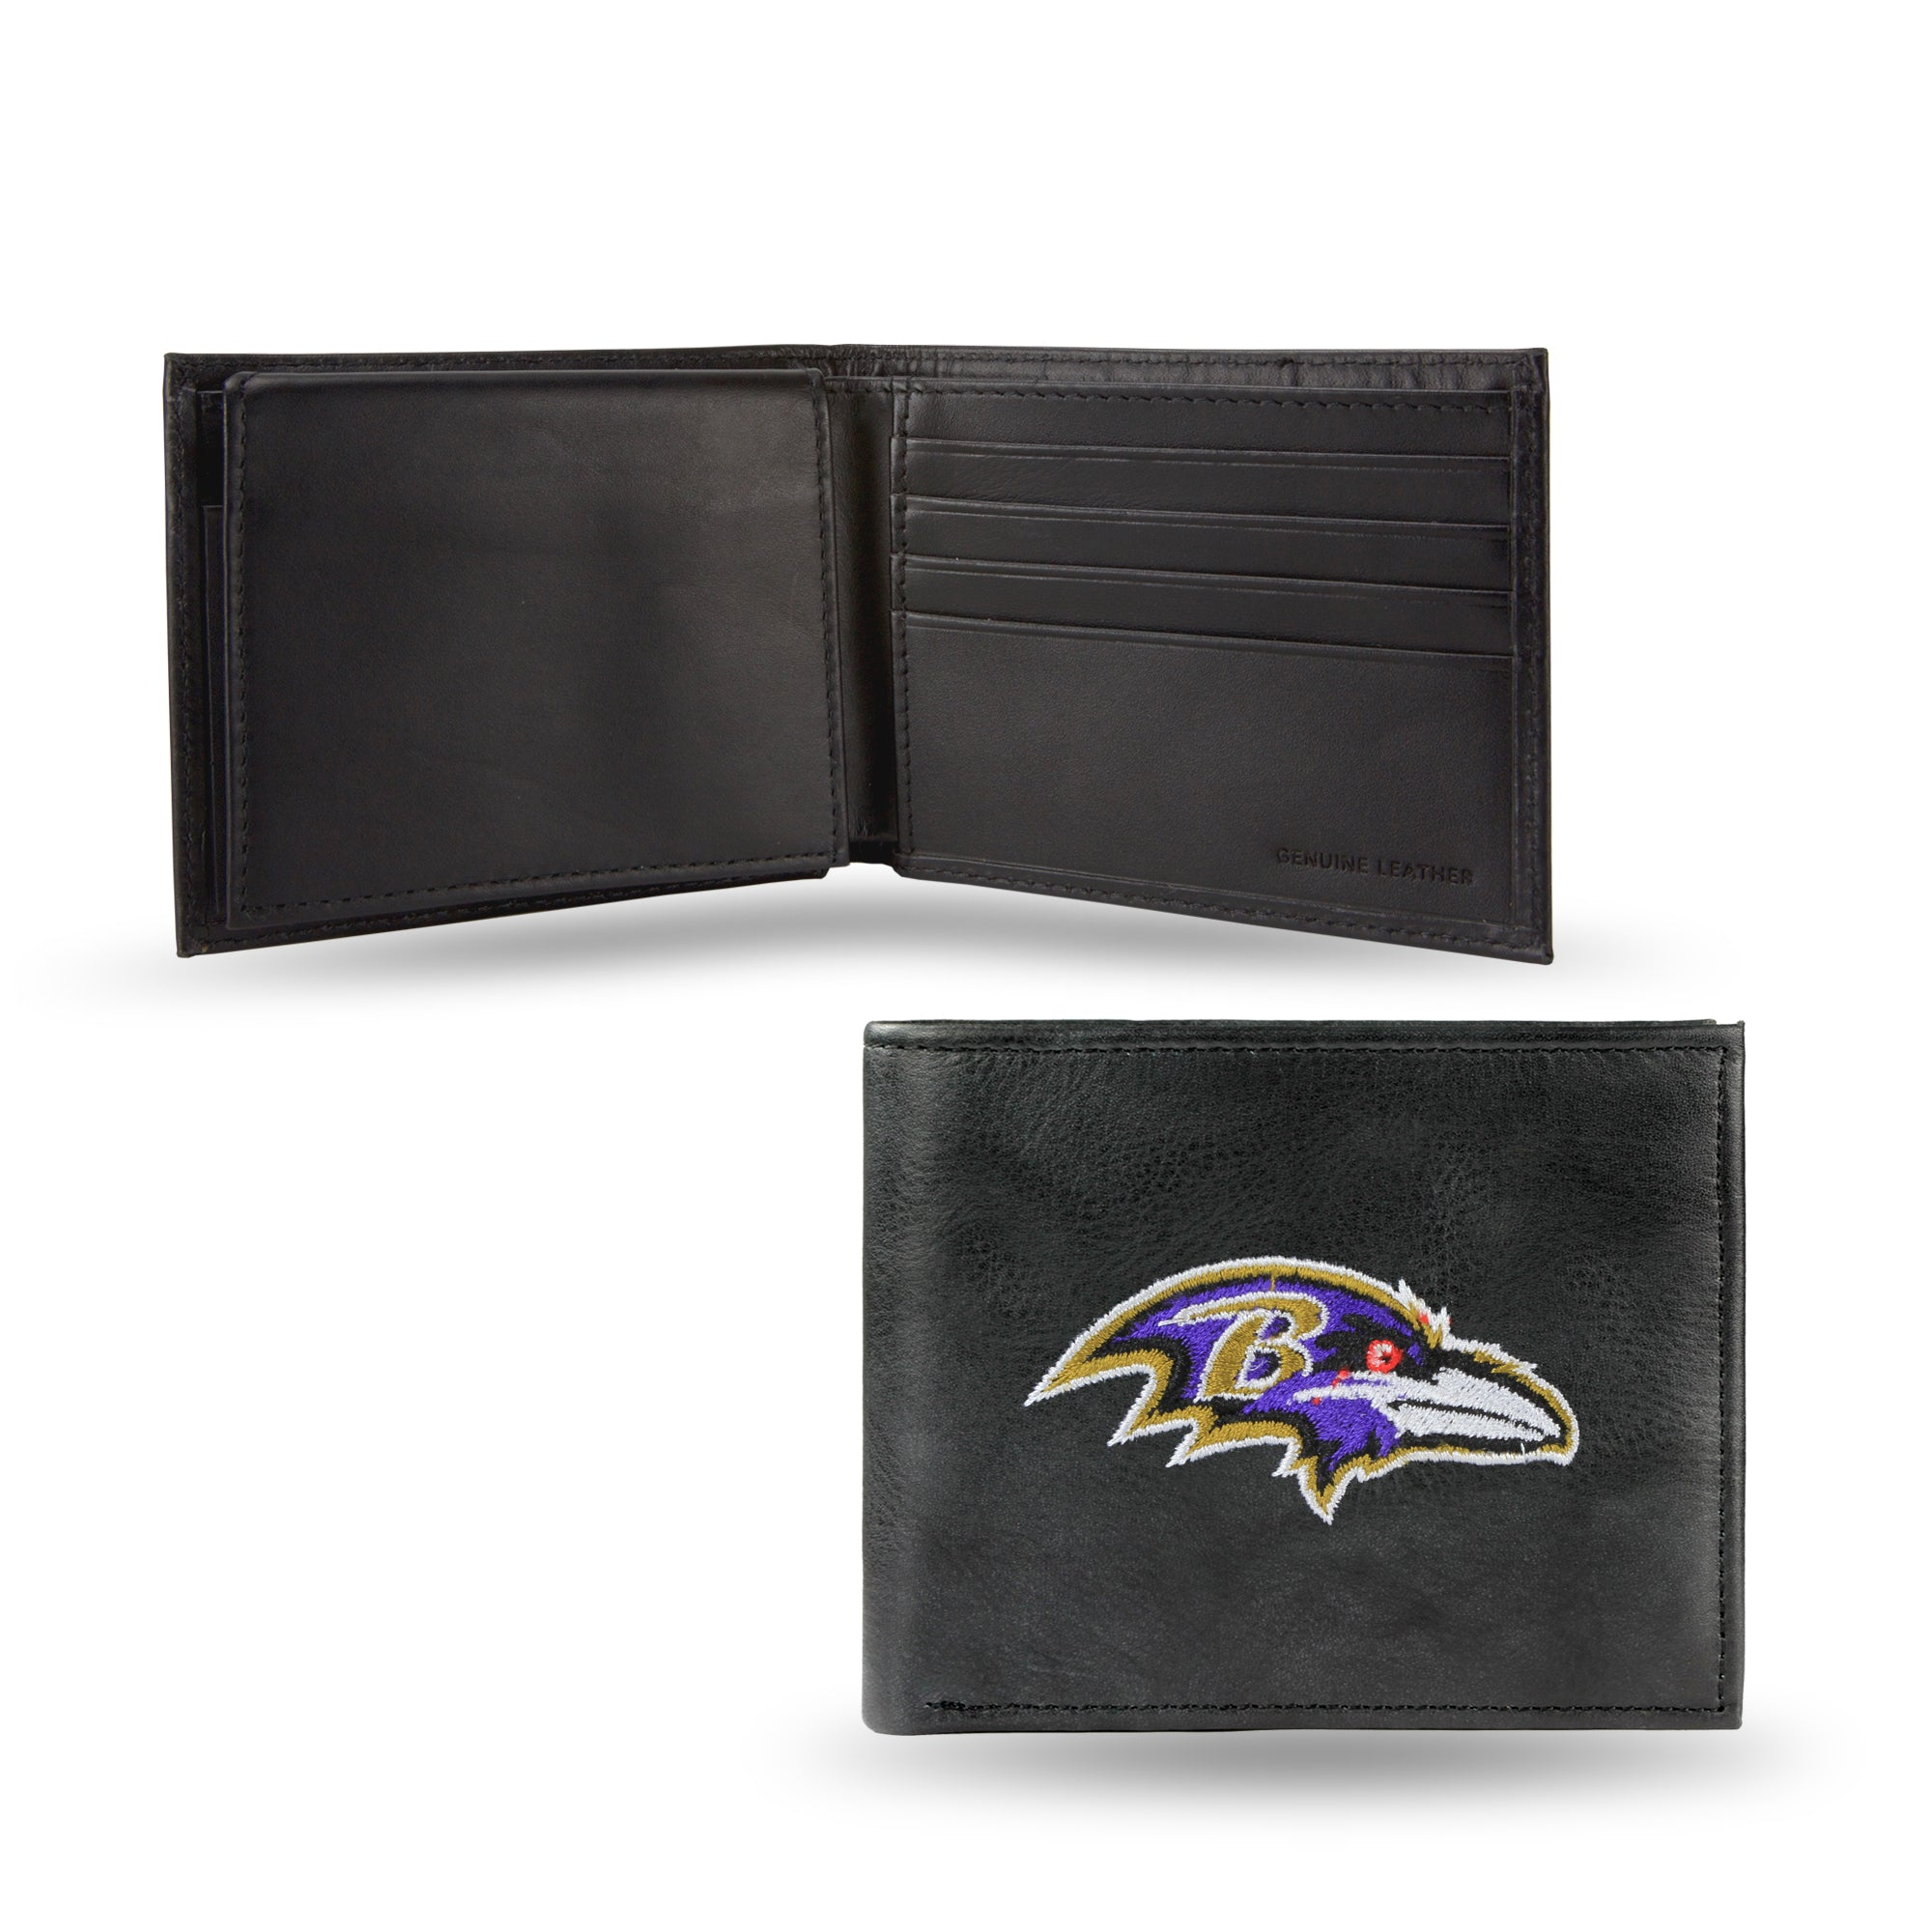 NFL Baltimore Ravens Embroidered Billfold / Wallet